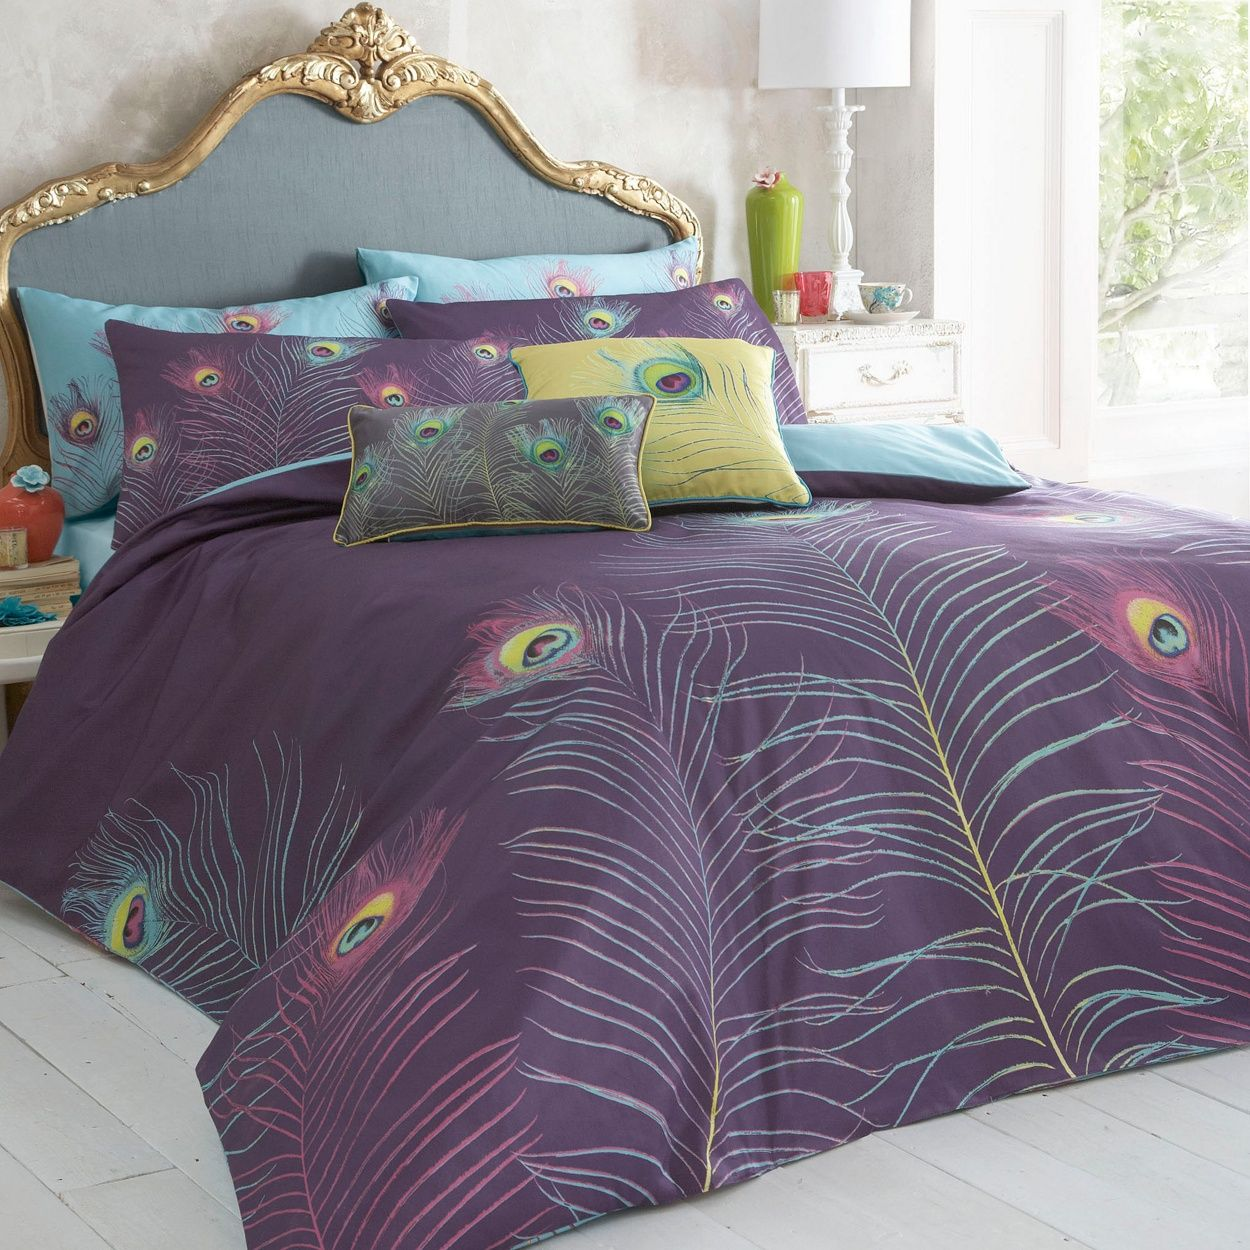 Butterfly Home By Matthew Williamson Purple Peacock Bedding Set